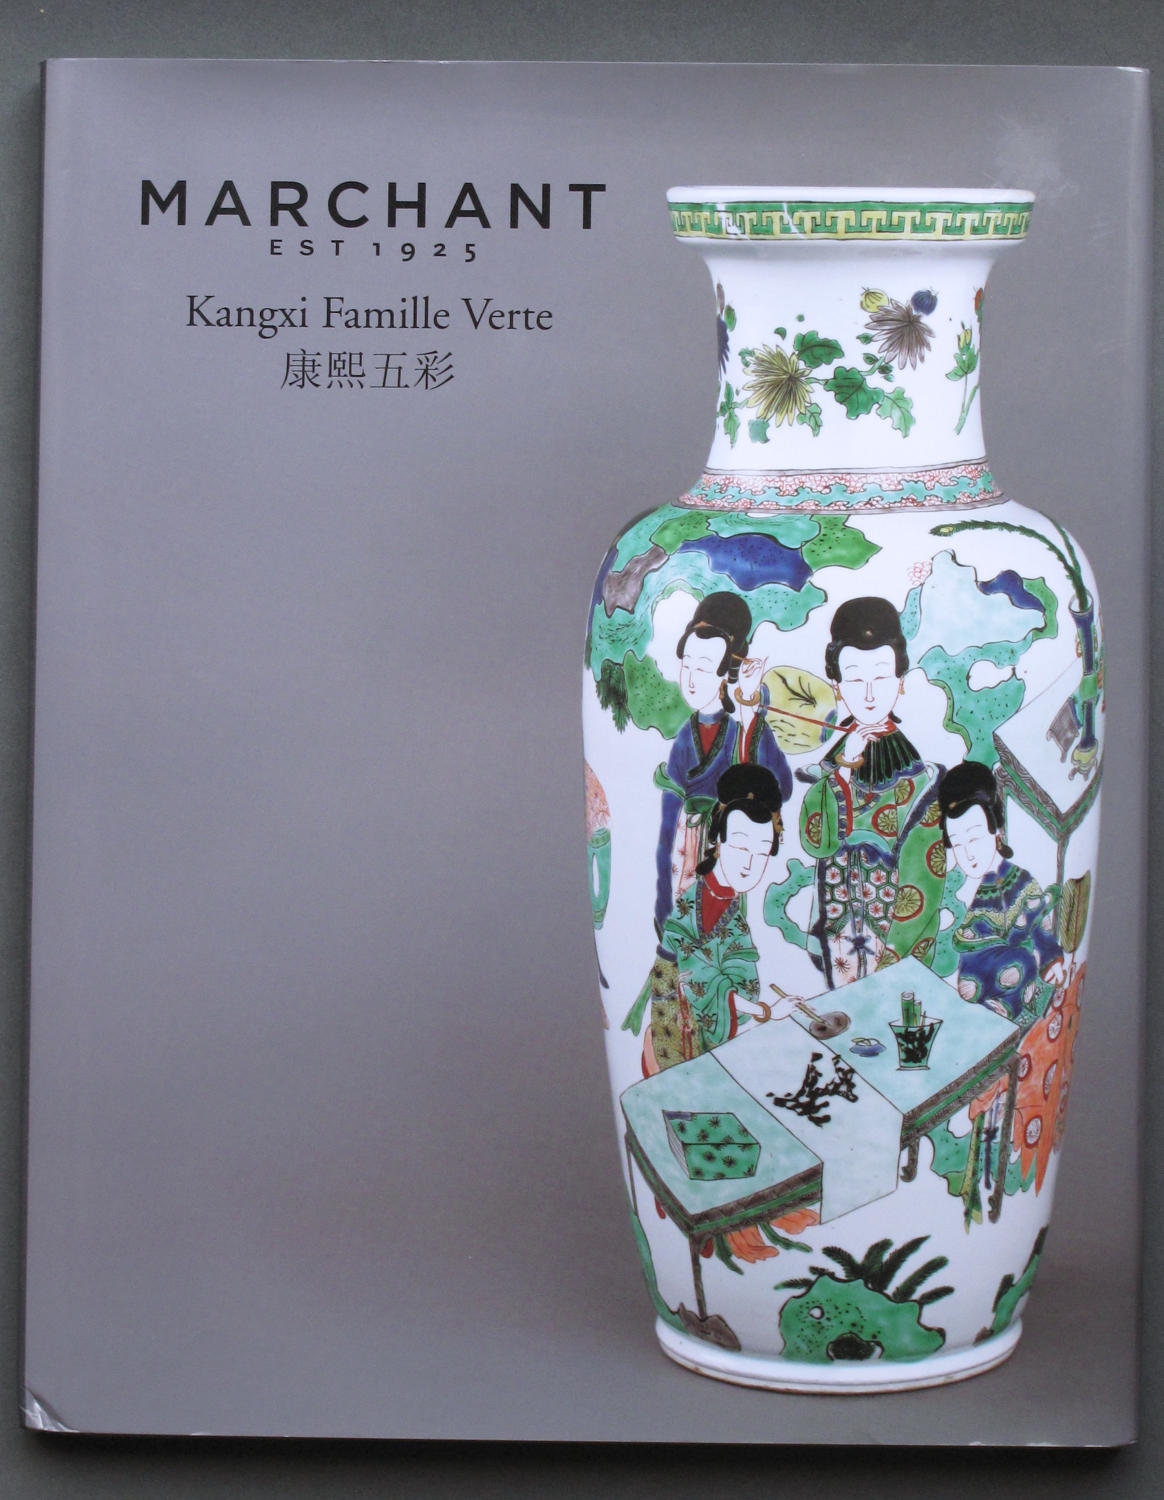 Marchant Exhibition catalogue of Kangxi Famille Verte